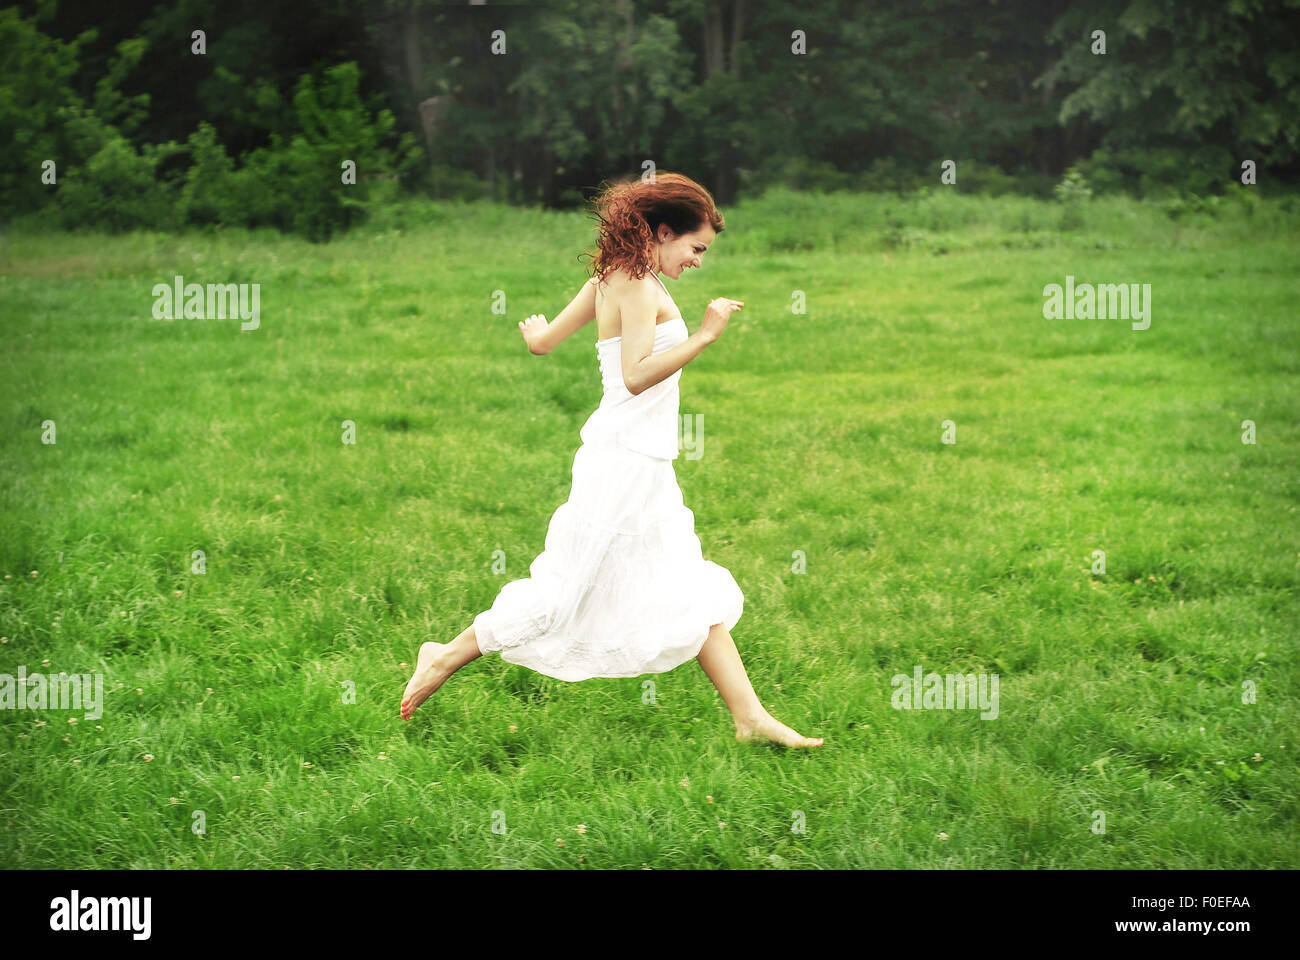 Pretty Girl Running Grass In Stock Photos   Pretty Girl Running ... 62d9356814a0